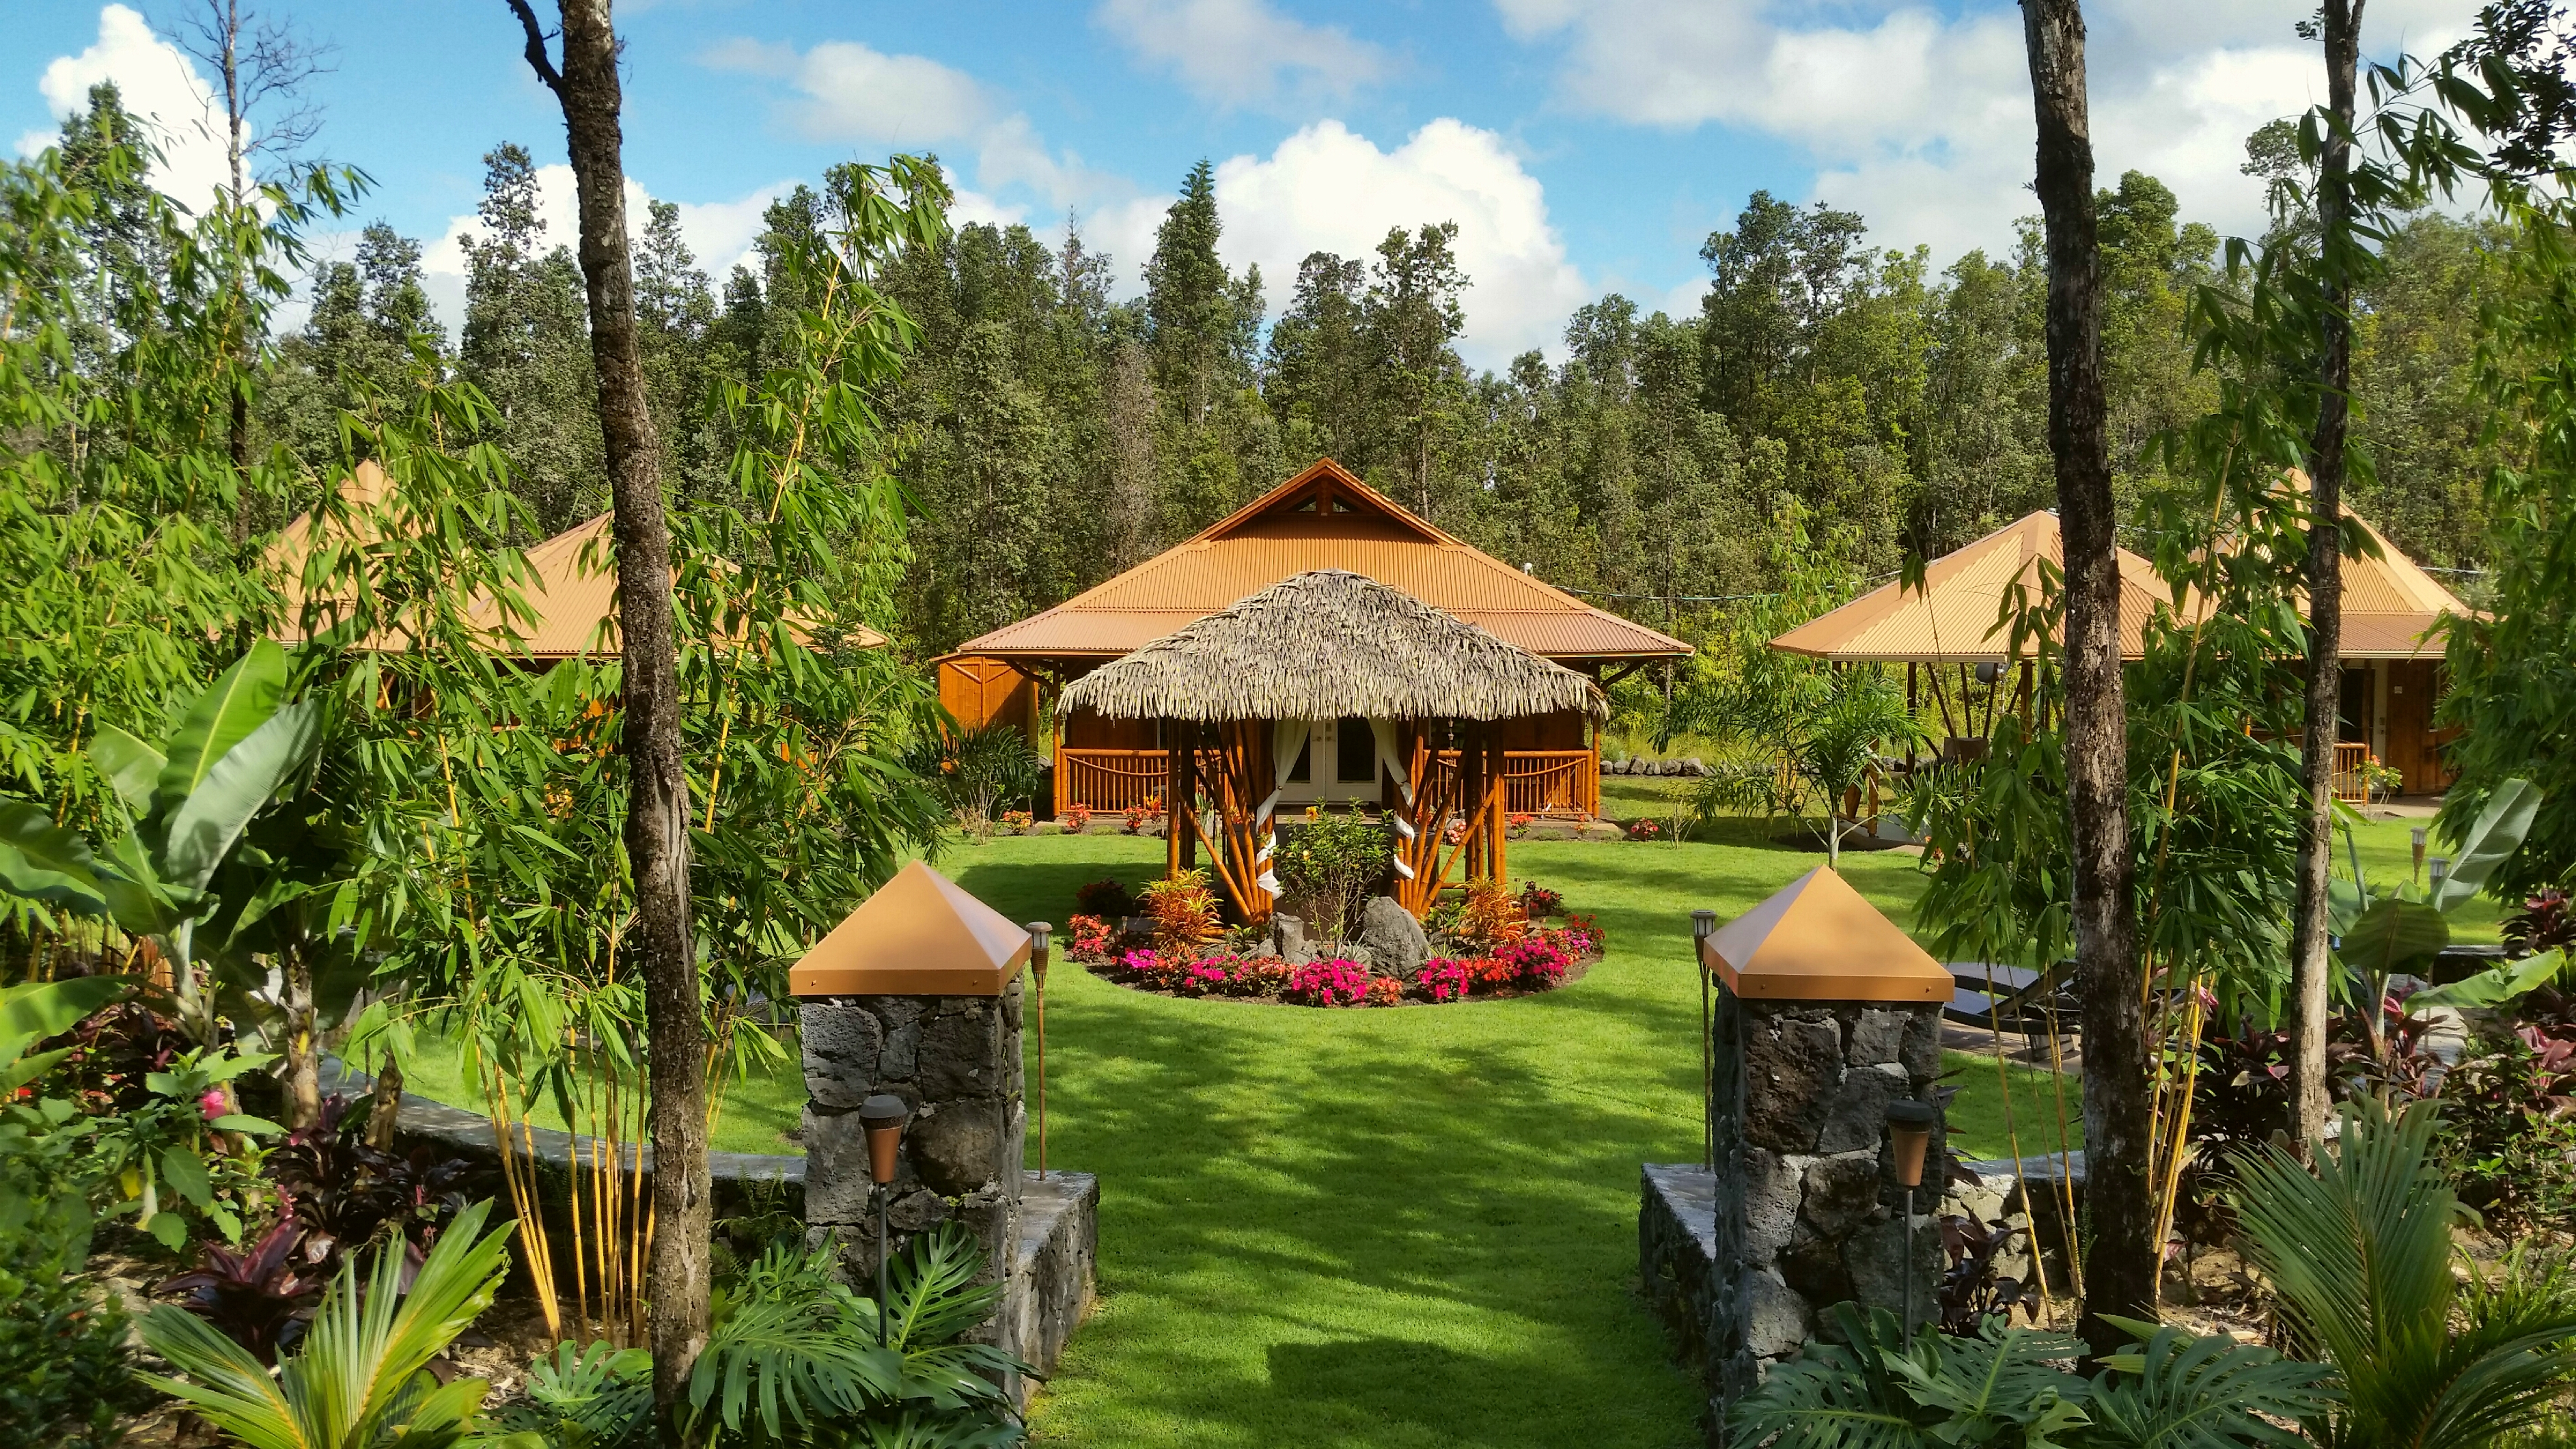 Volcano Mountain Retreat VMR b&b Big Island Hawaii grounds entrance